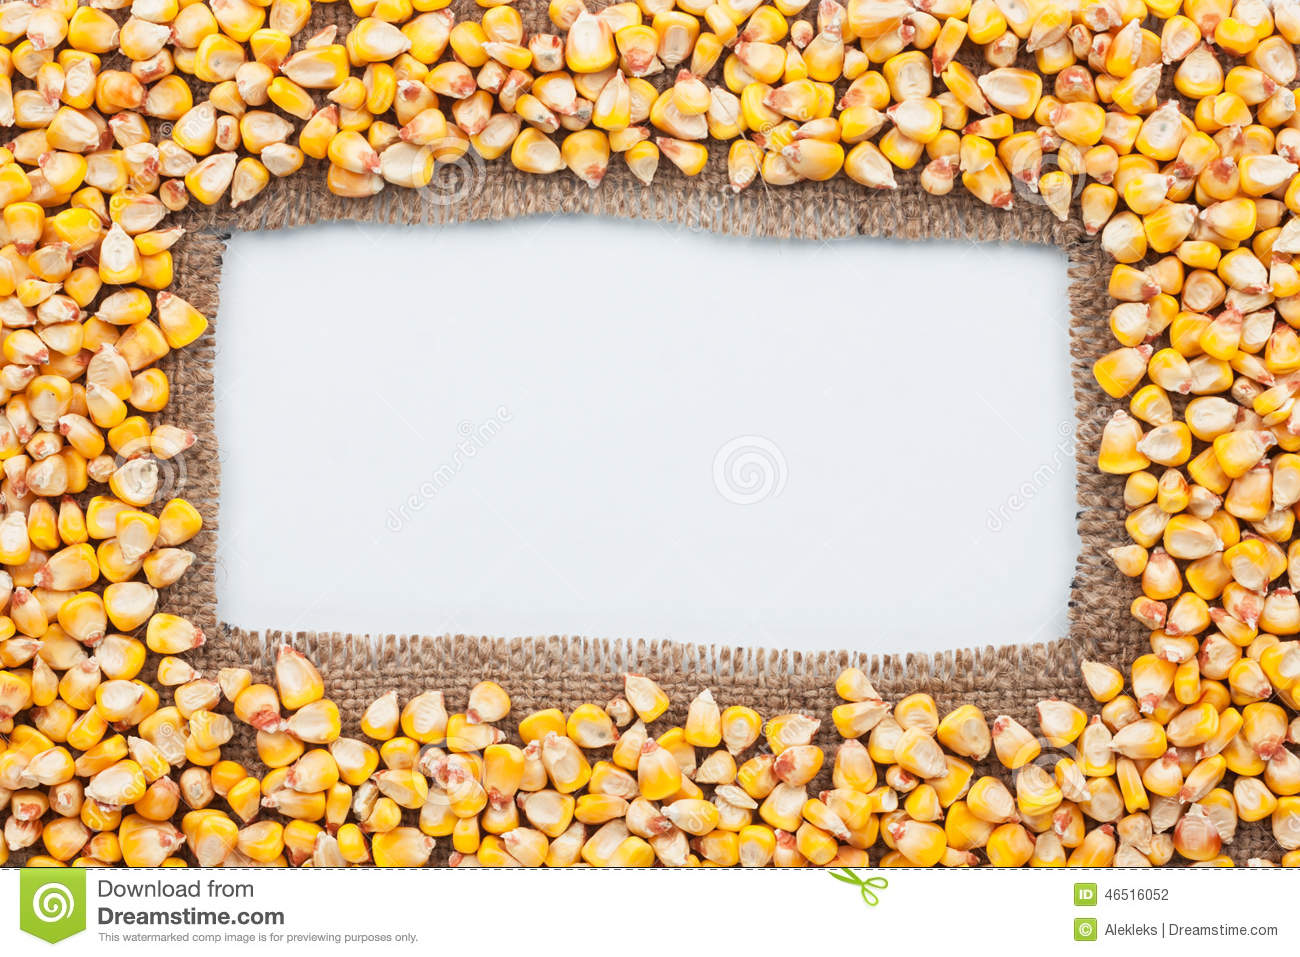 Properties ifthese asses were made of corn opinion you